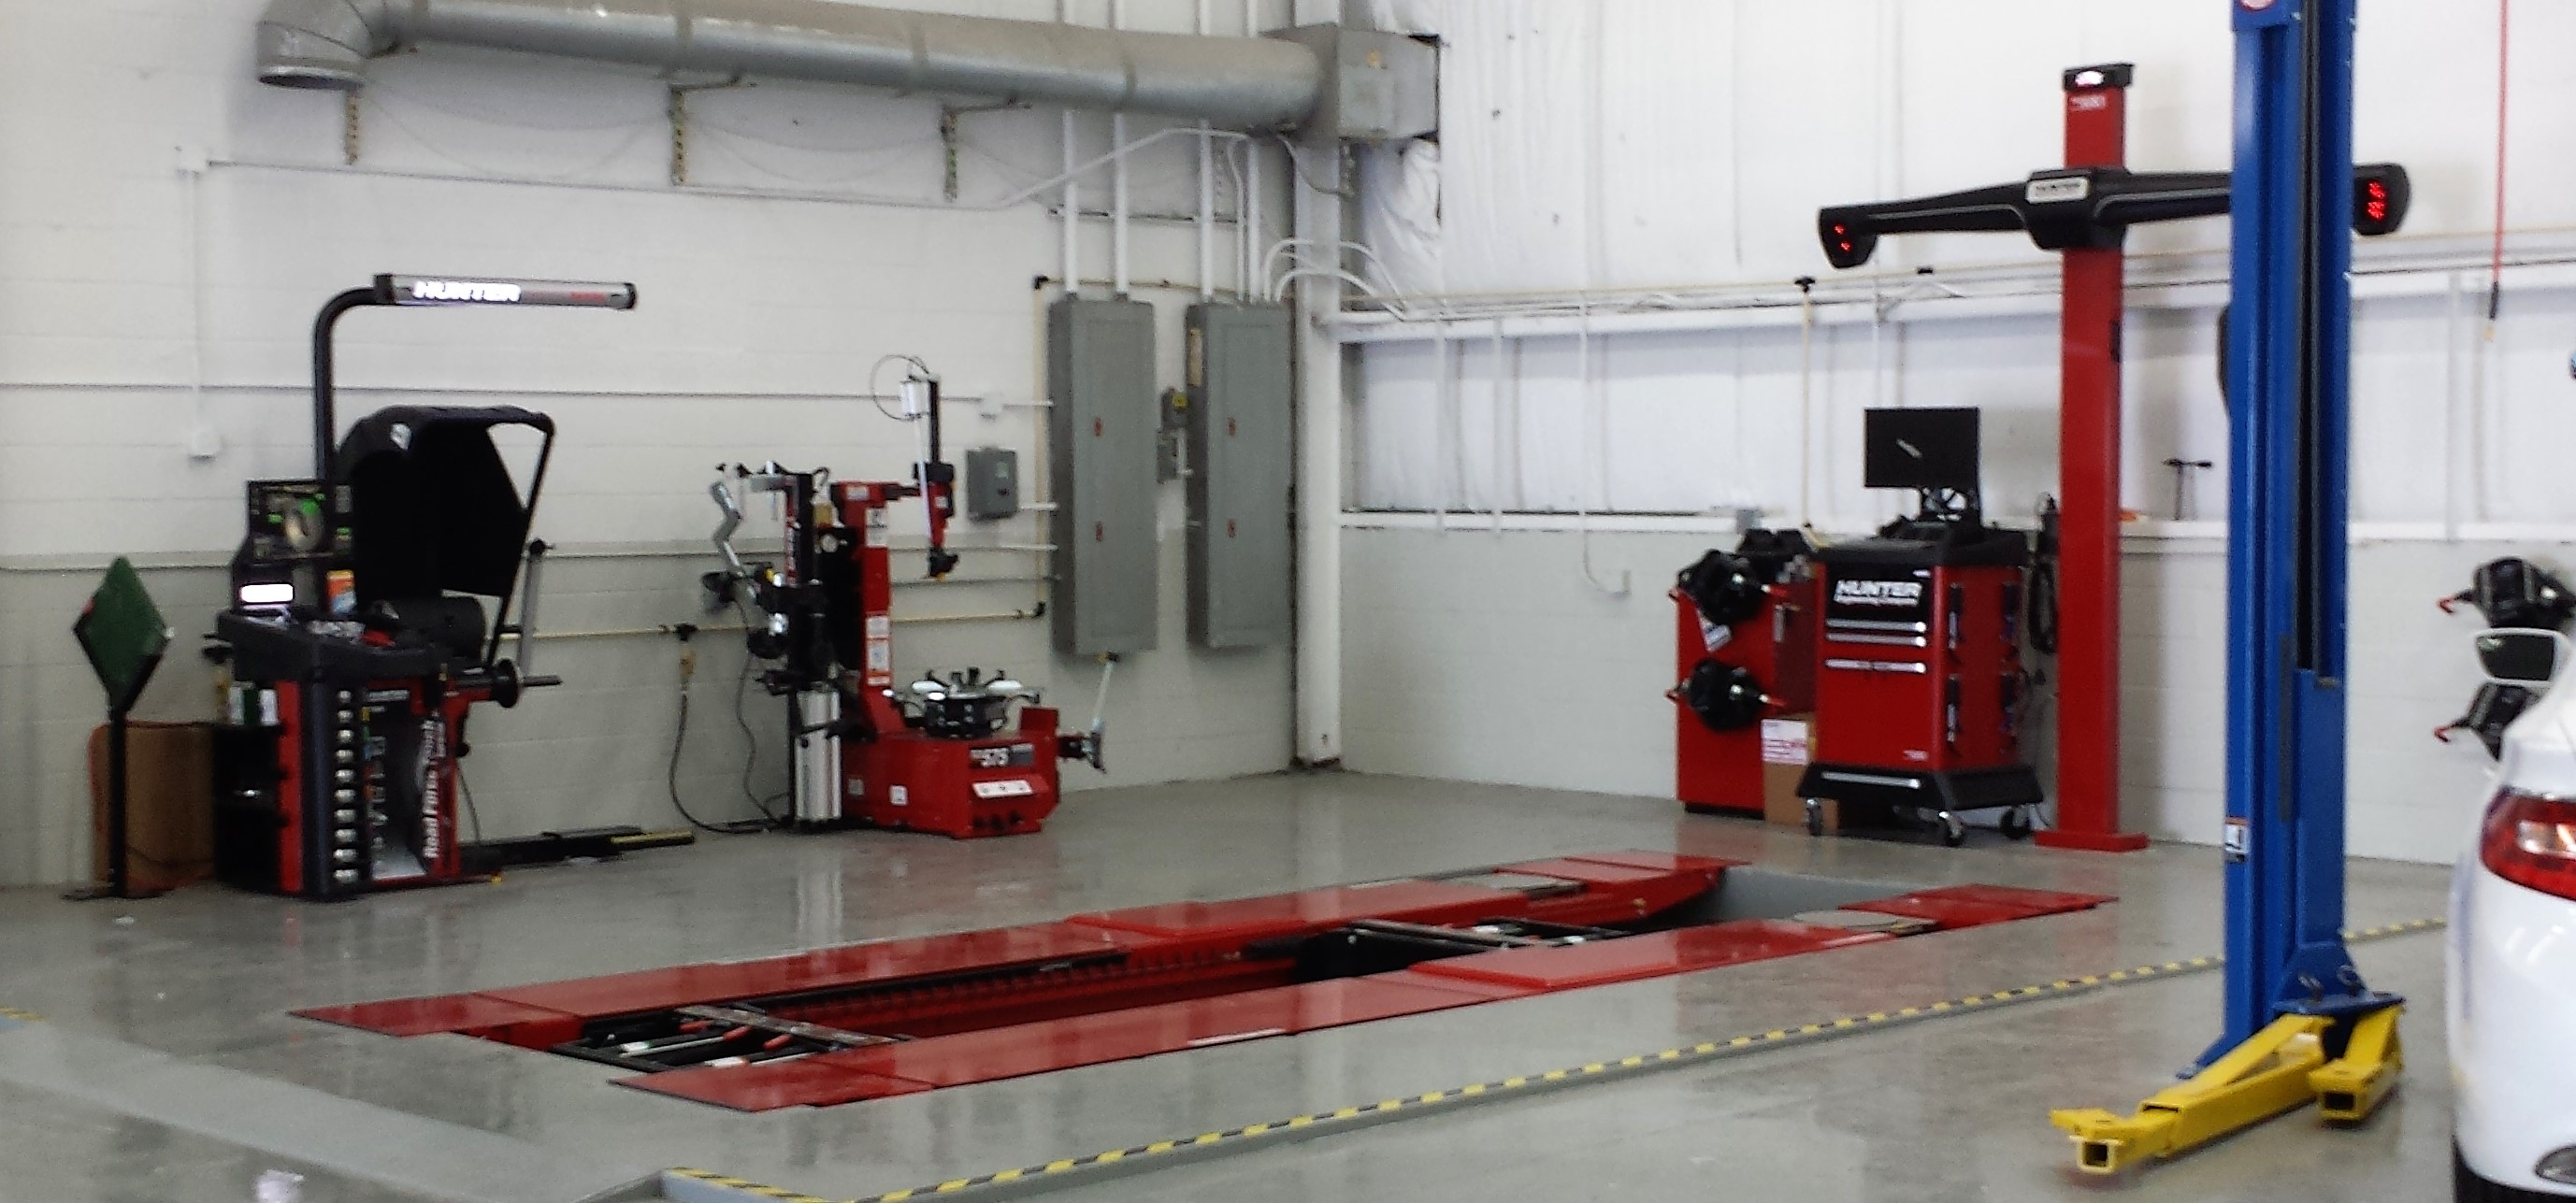 Hunter Rack alignment machine, tire changer and wheel balancer combination